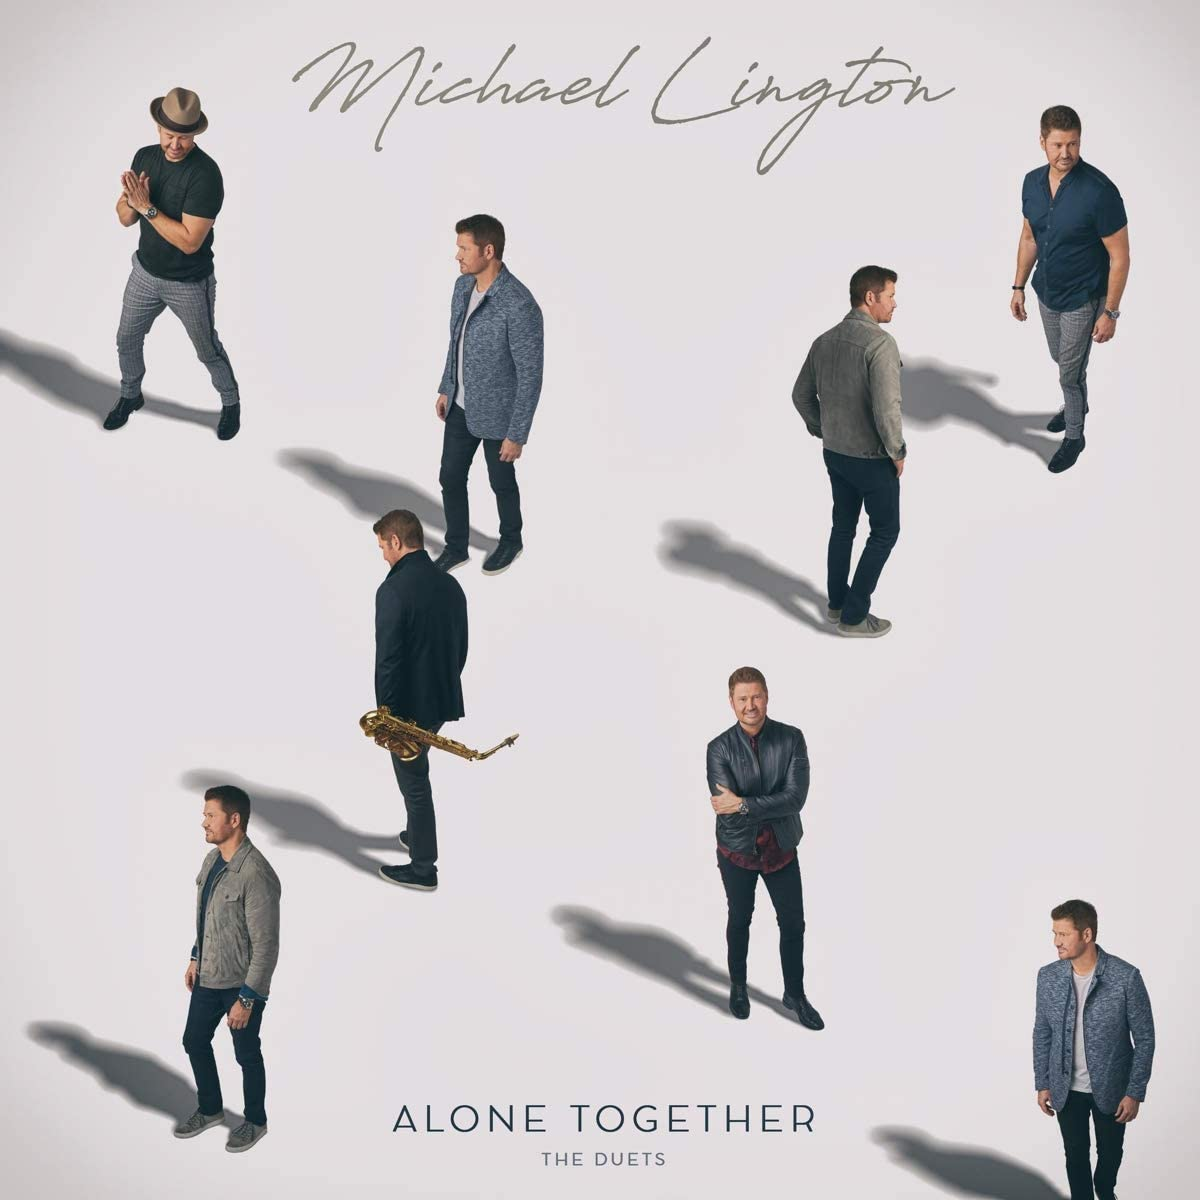 Alone Together - The Duets